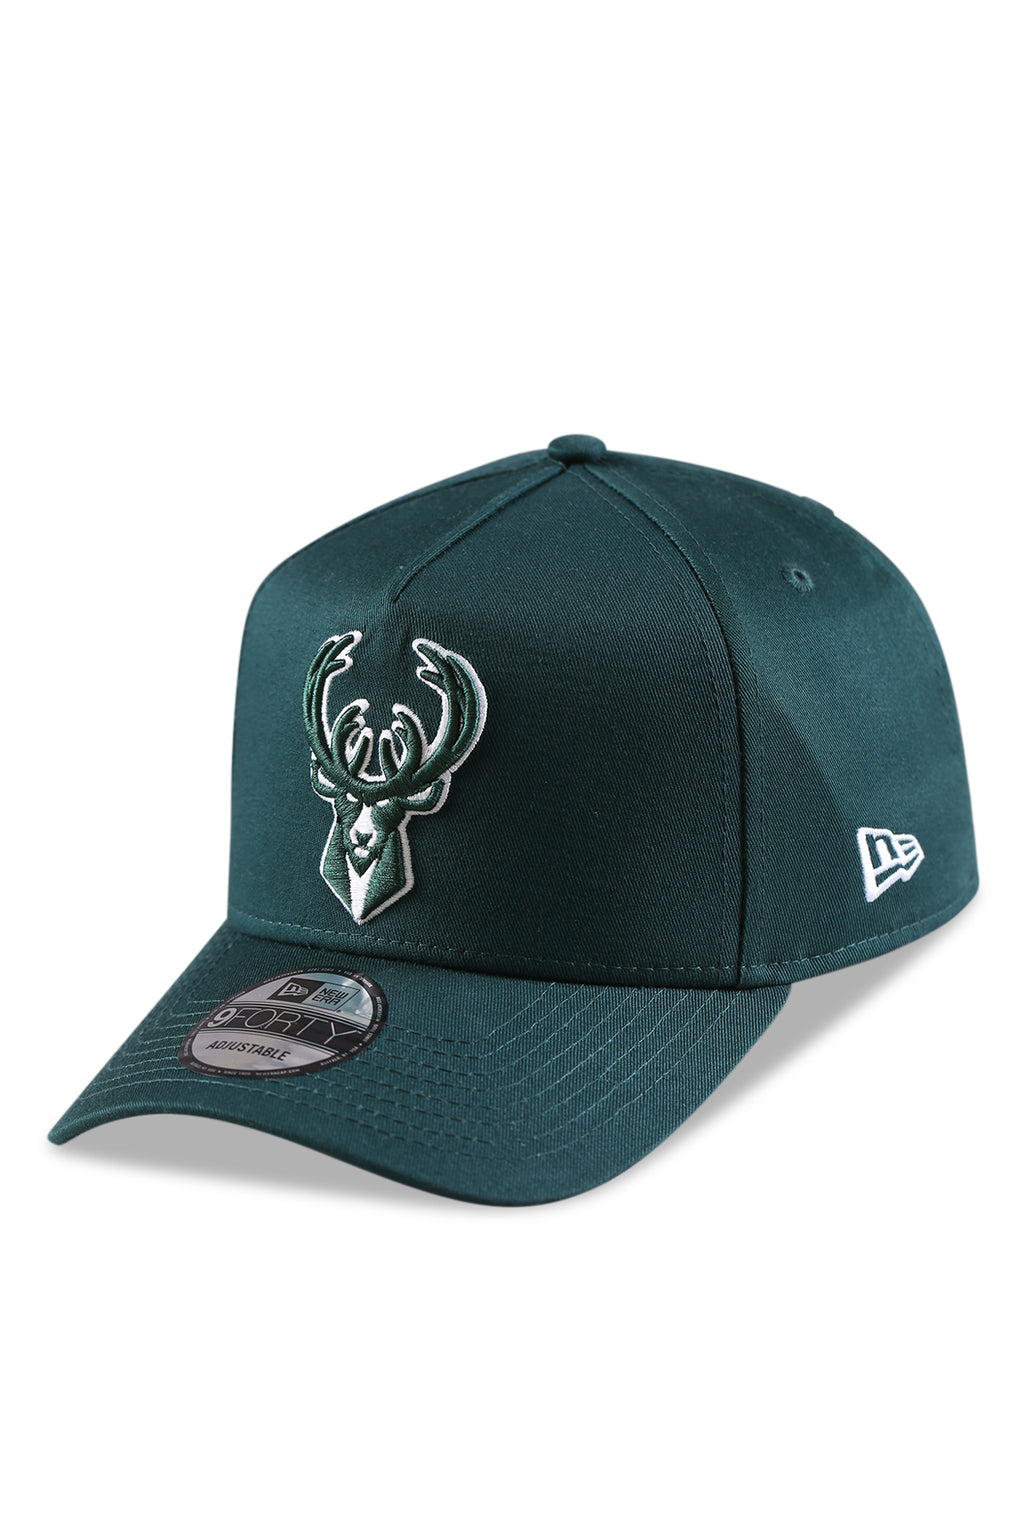 New Era 940 AF Milwaukee Bucks Dark Green Snapback Angle